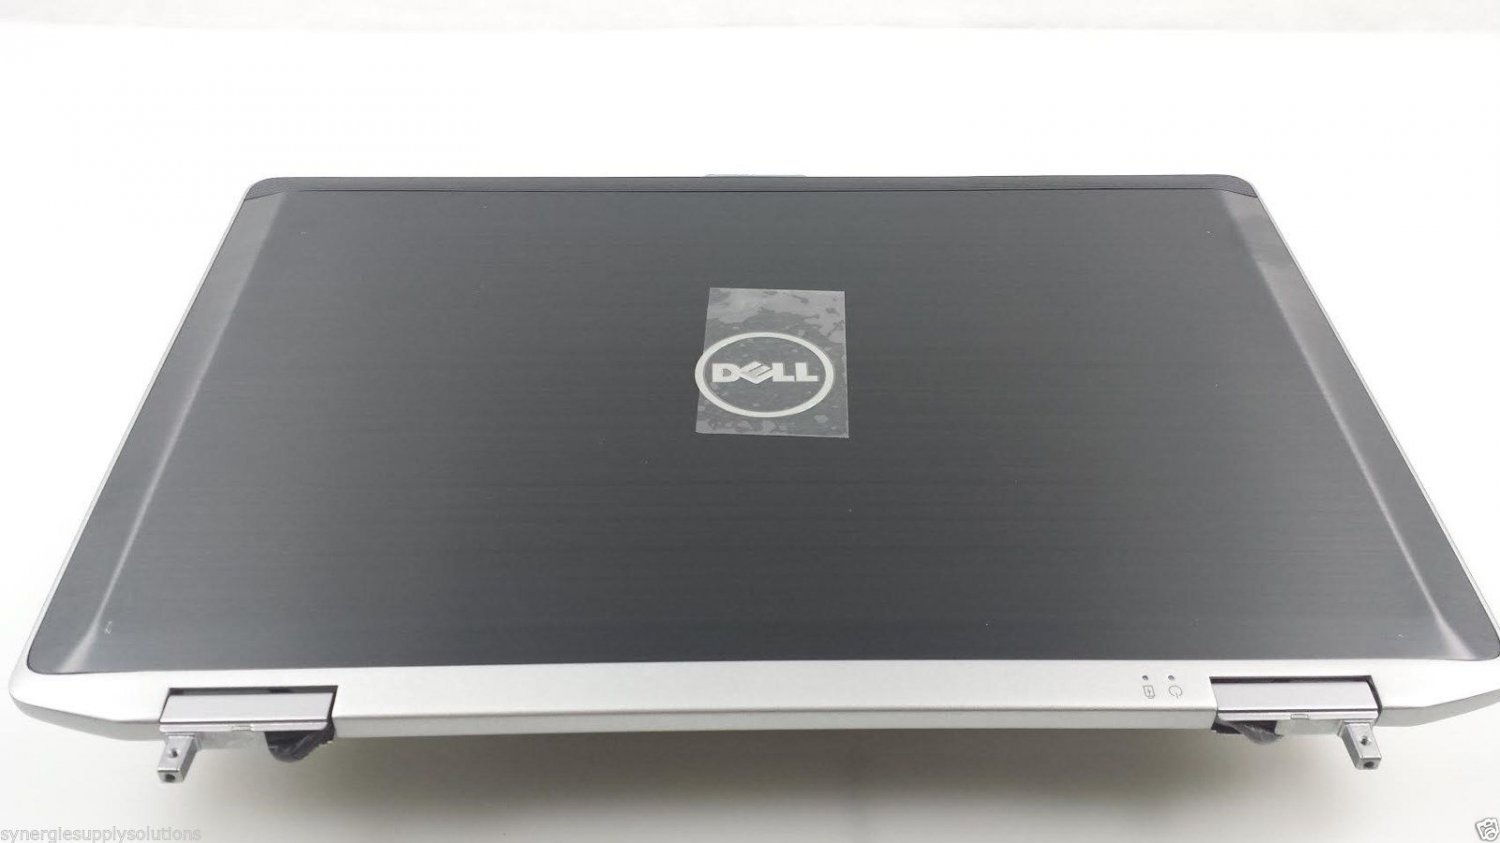 NEW GENUINE DELL LATITUDE E6420 LCD R017 Backcover w/ Hinges 616W2 0616W2